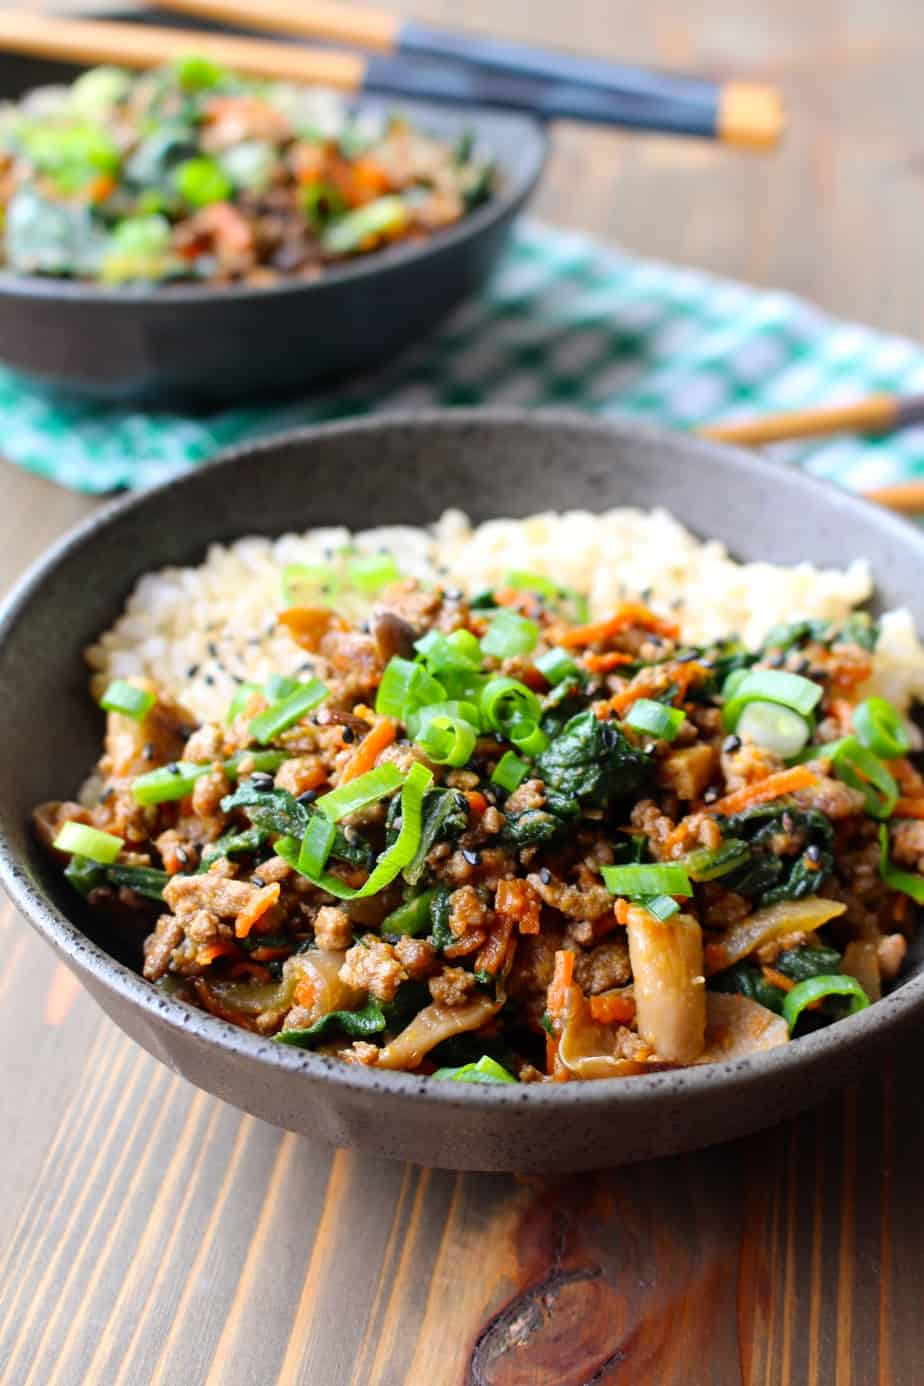 Ground pork stir fry recipes